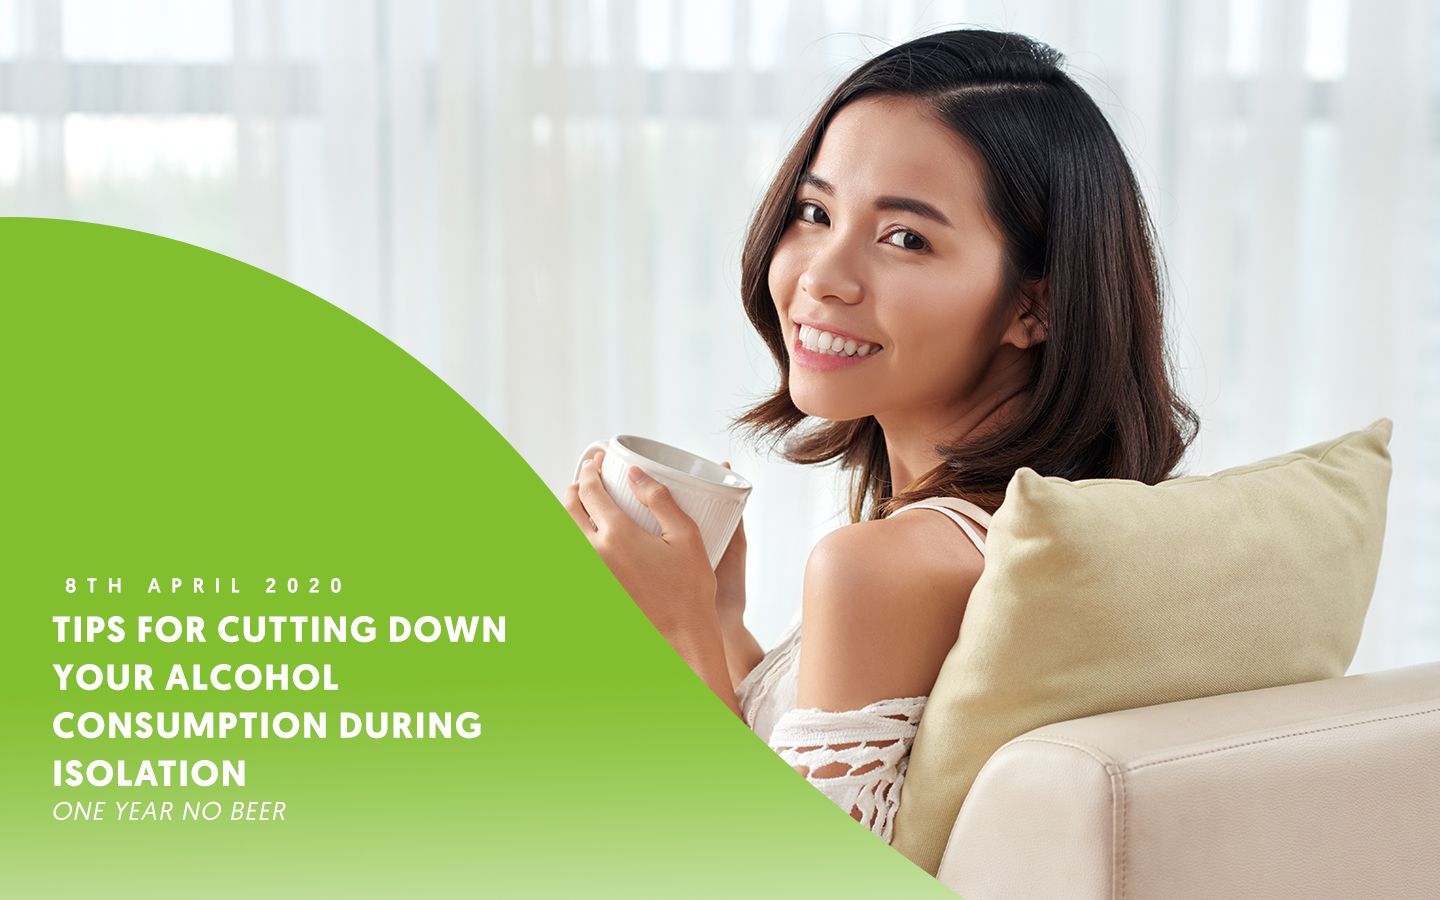 Tips for cutting down your alcohol consumption during isolation